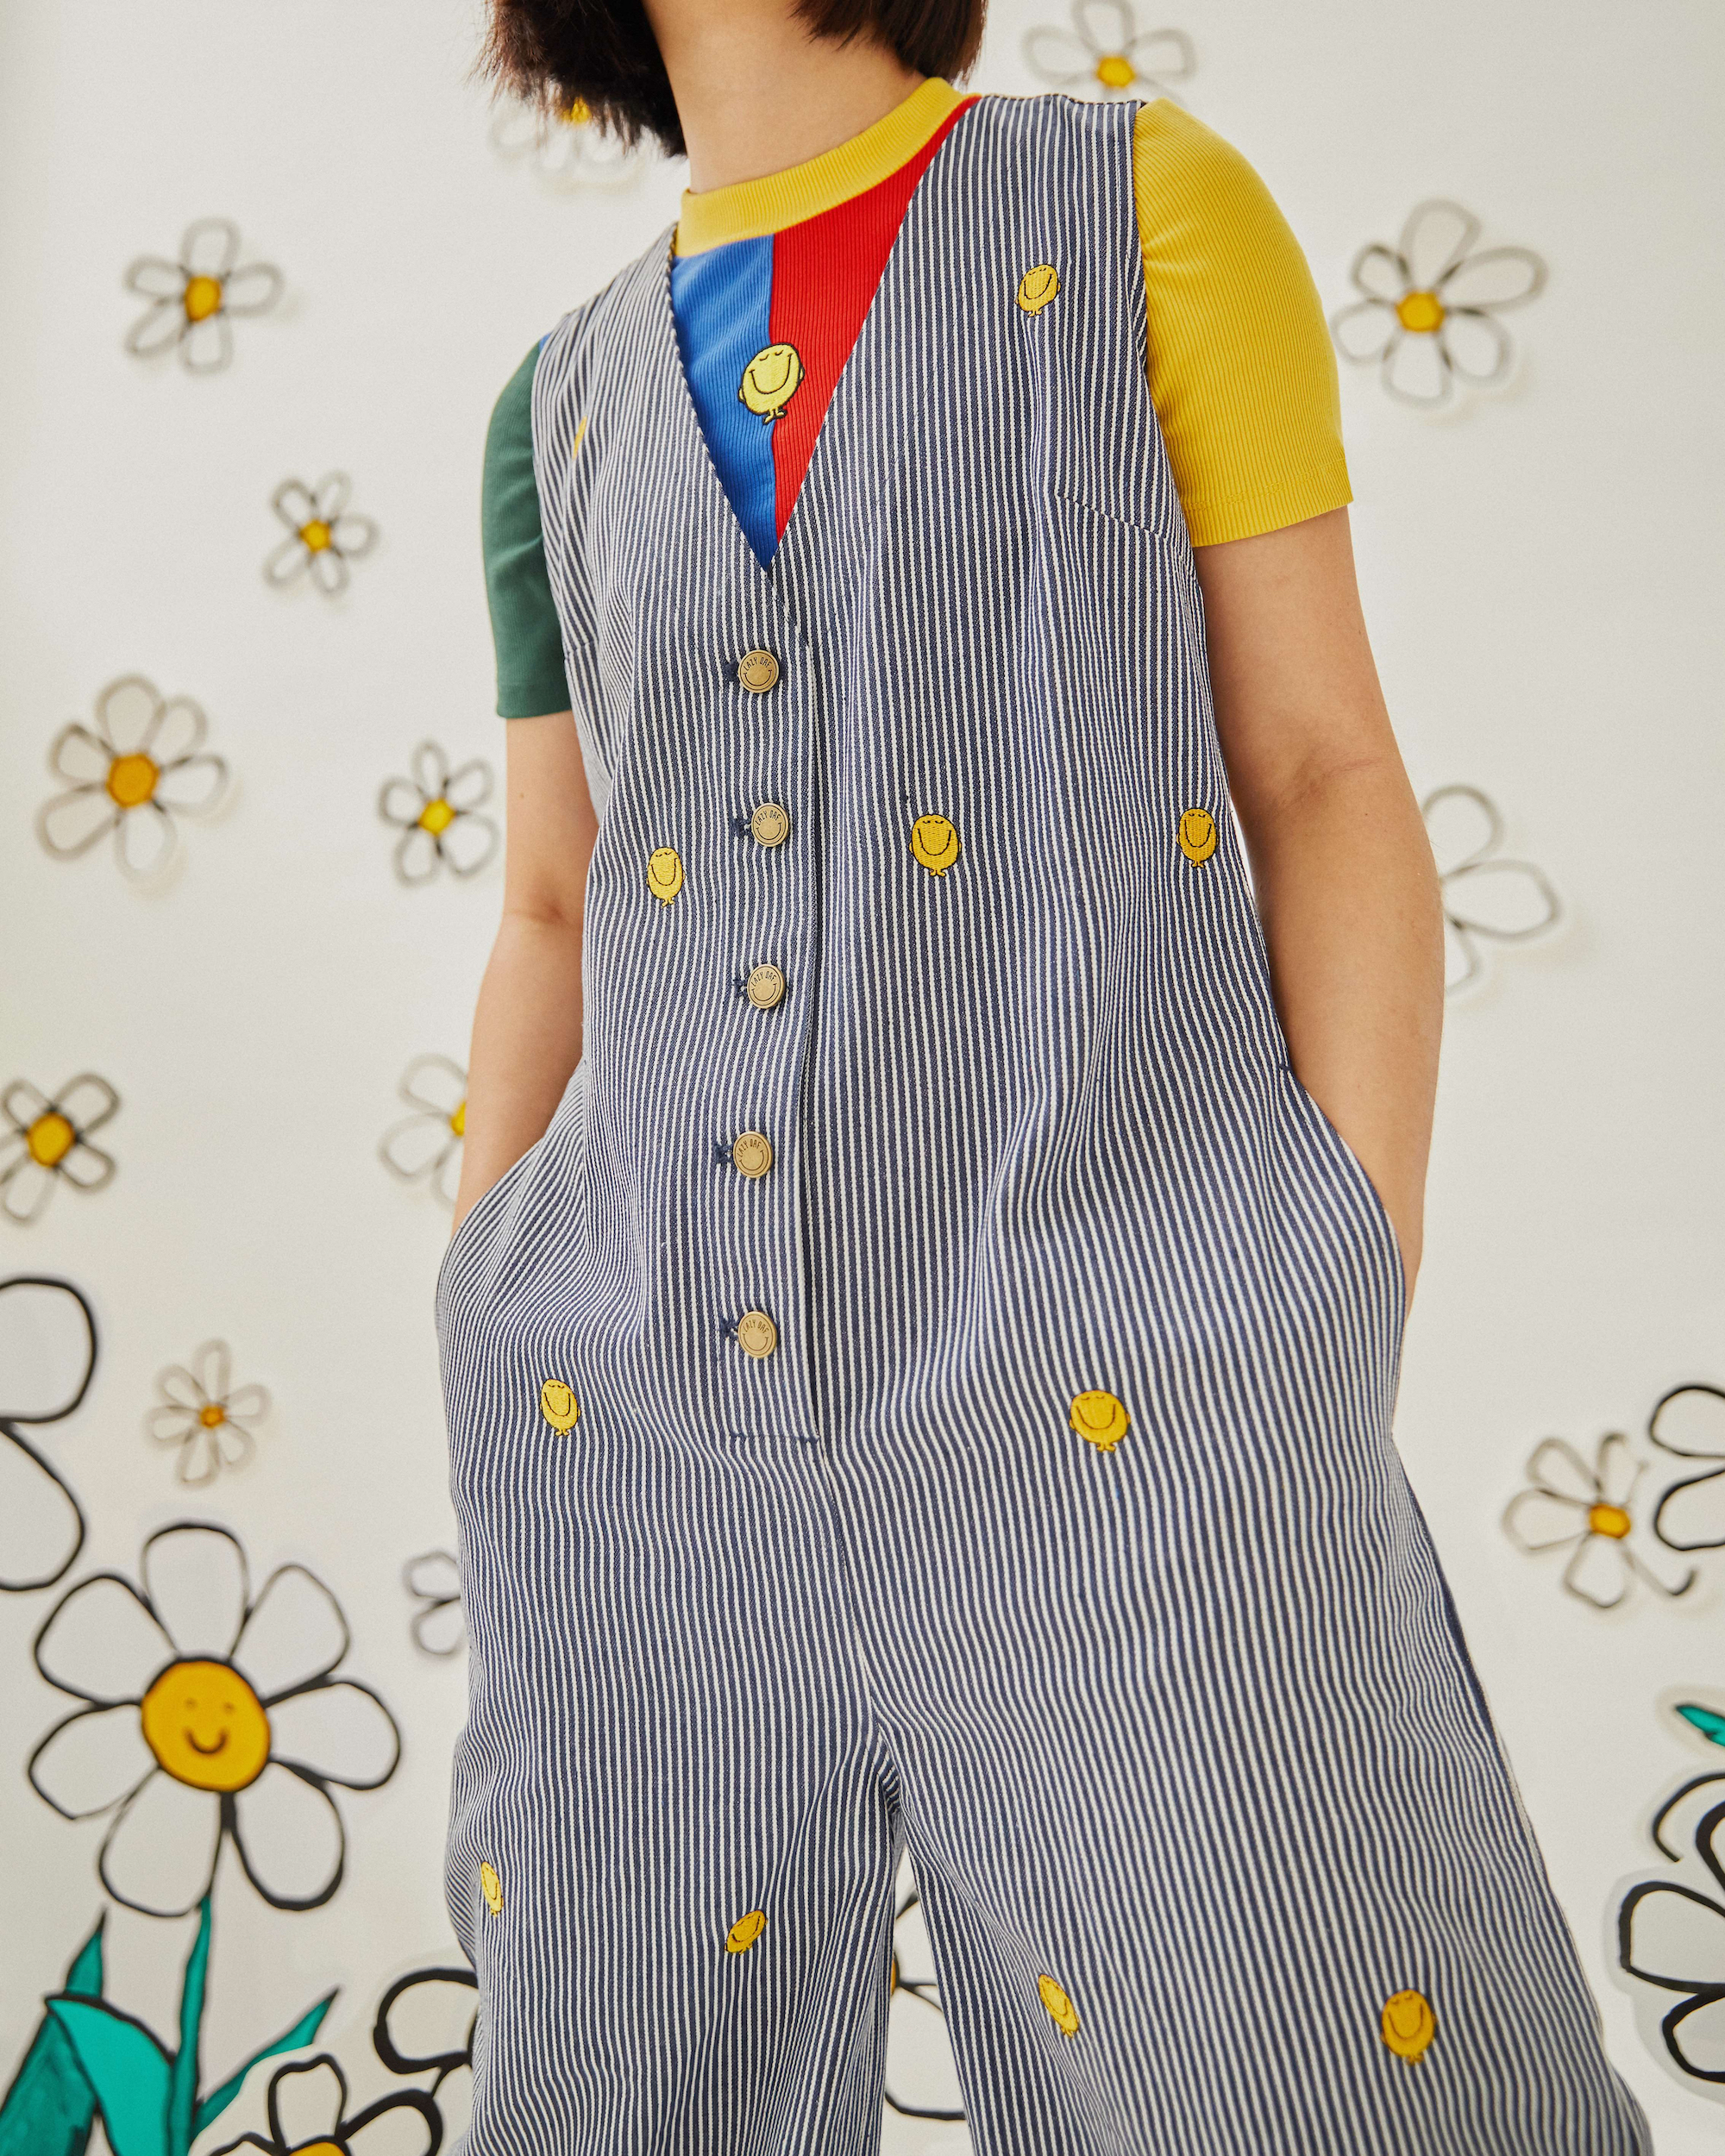 Wonderland Lazy Oaf x Mr. Men collaboration jumpsuit